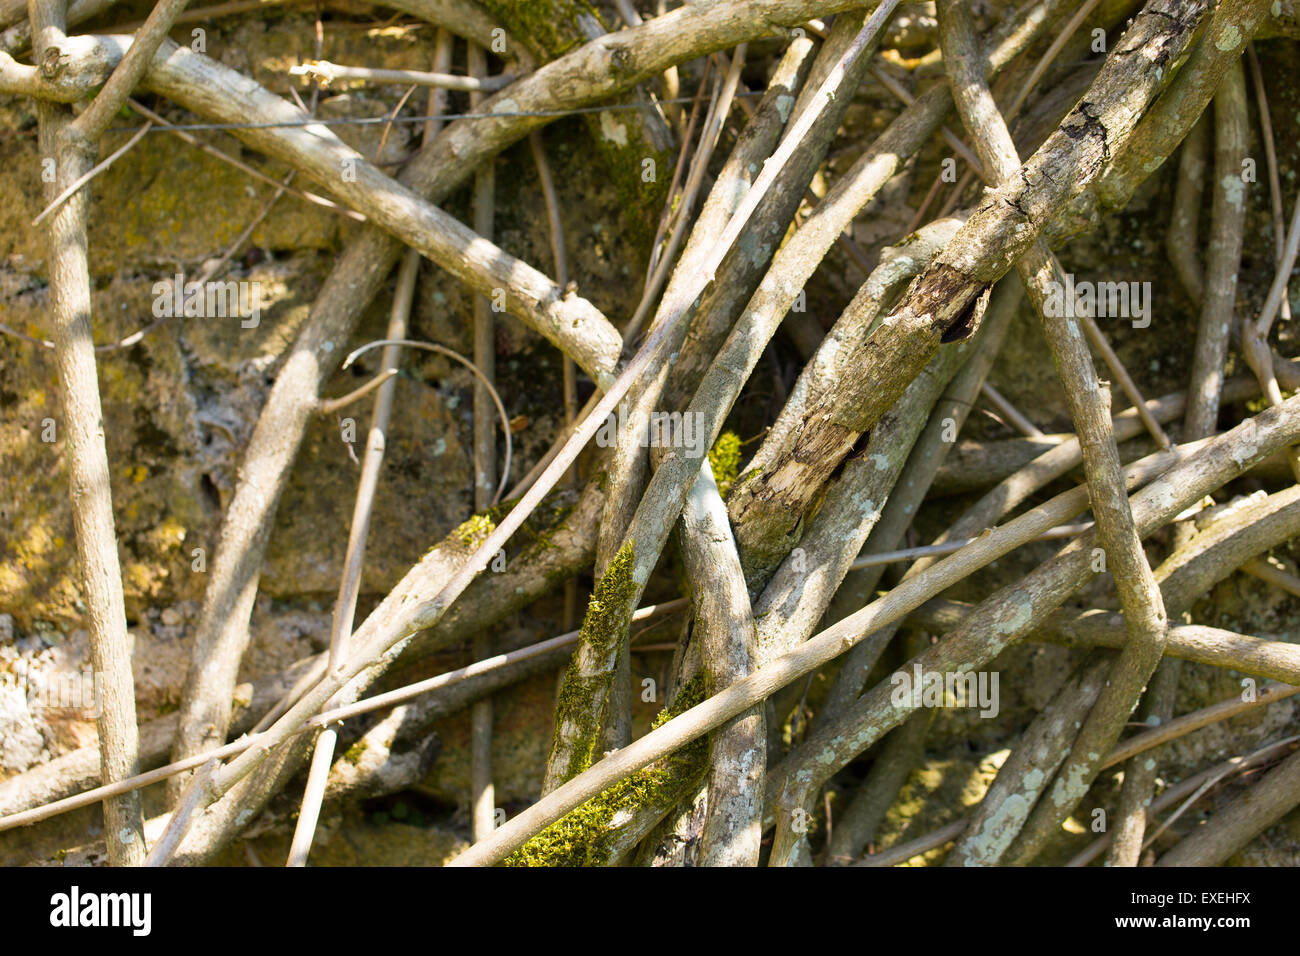 Dead plant roots background grunge texture - Stock Image